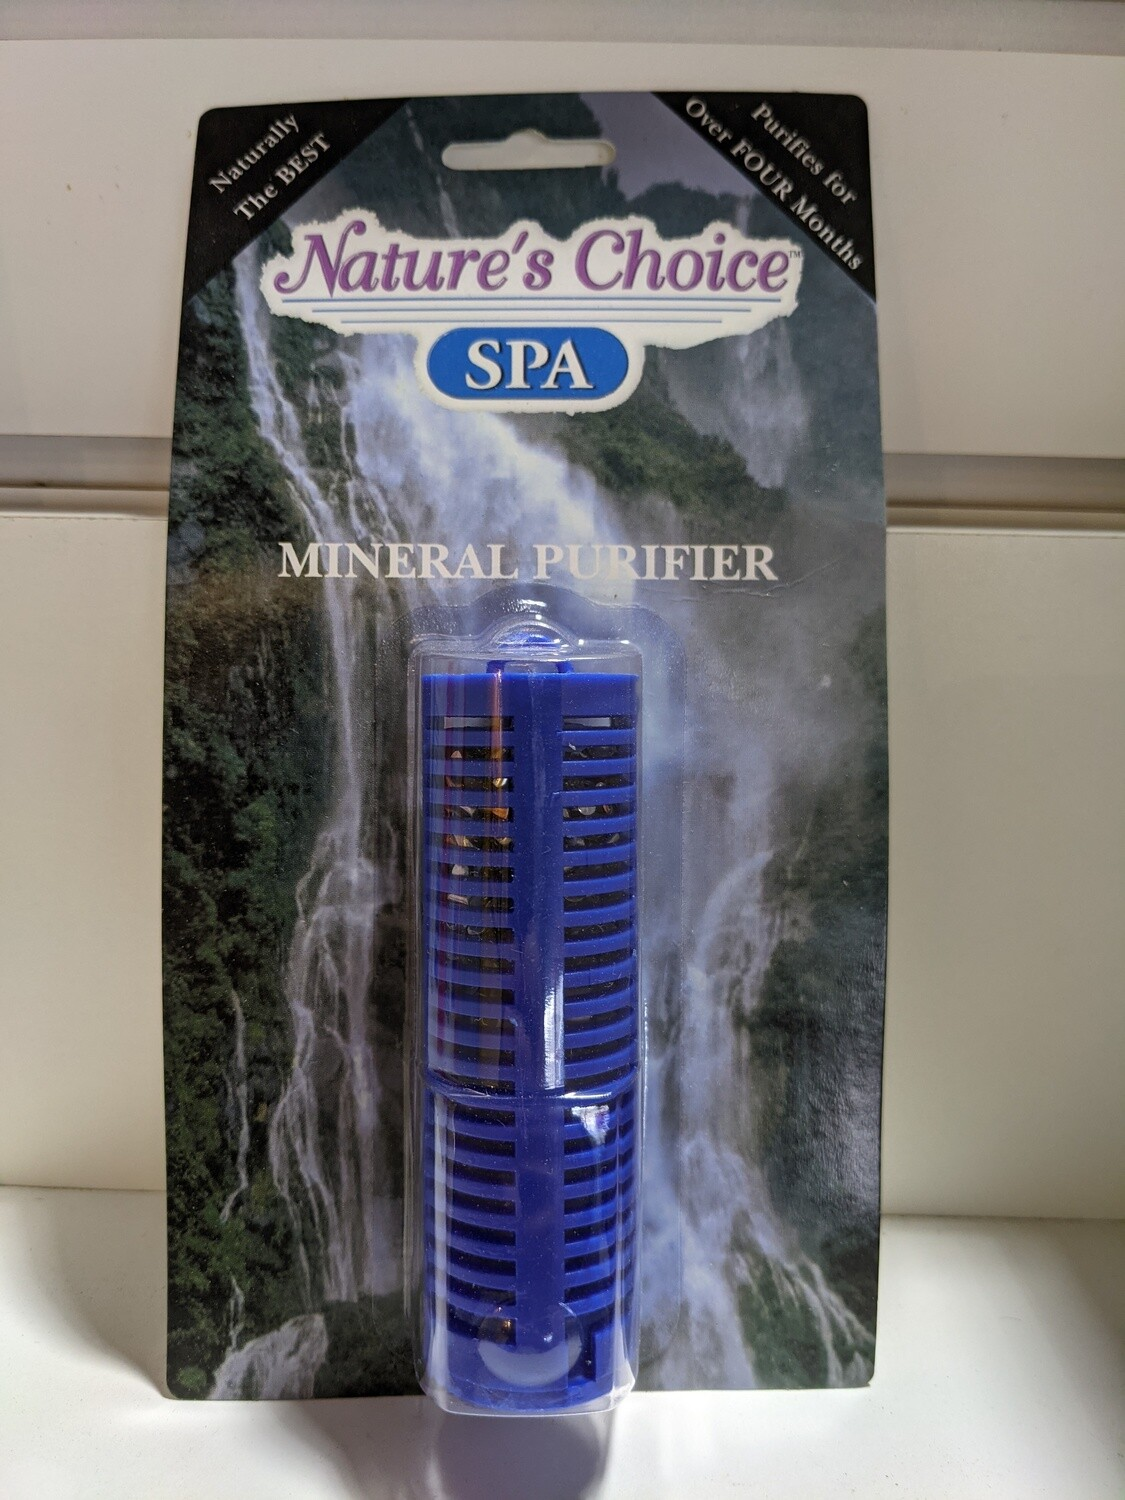 MINERAL PURIFIER